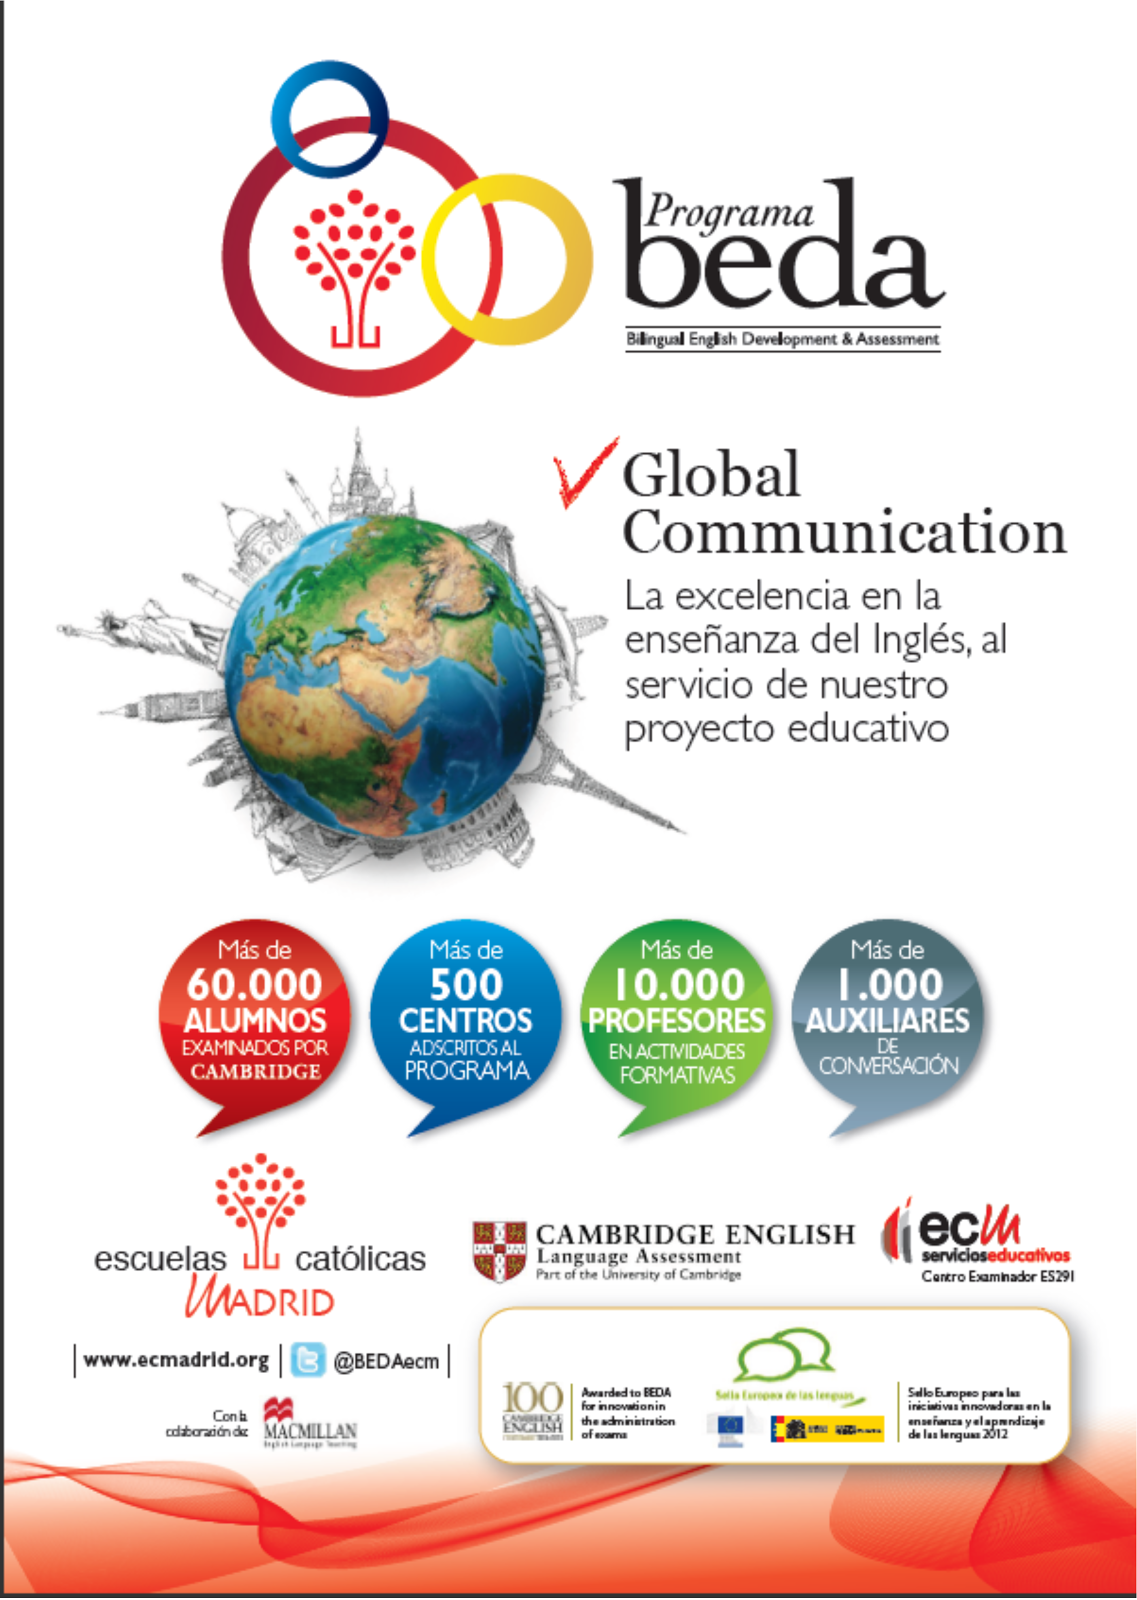 BEDA PROJECT